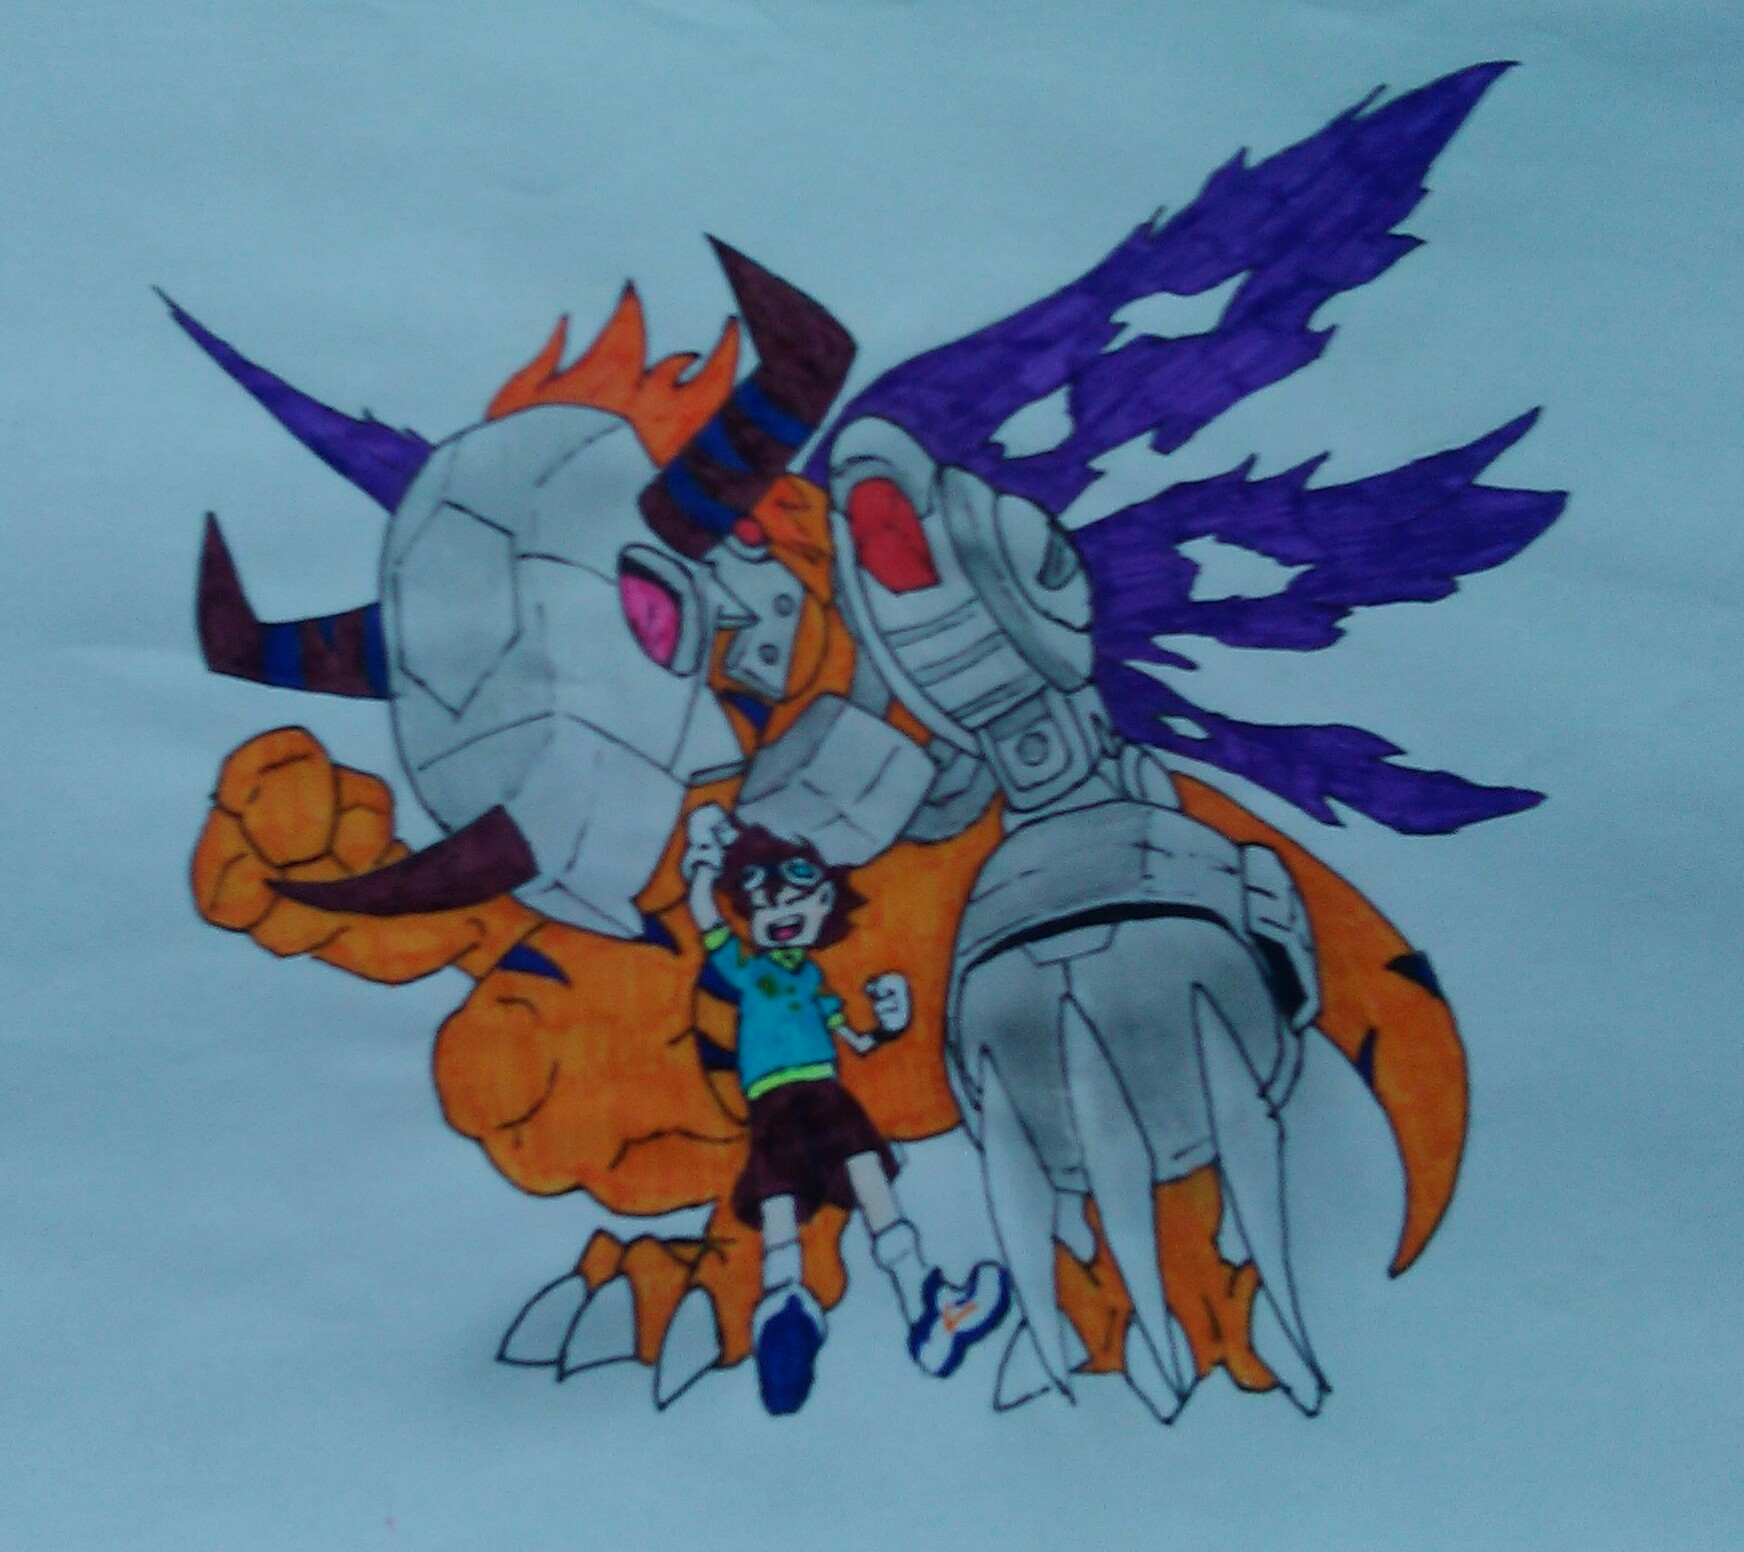 Digimon Tai and MetalGreymon